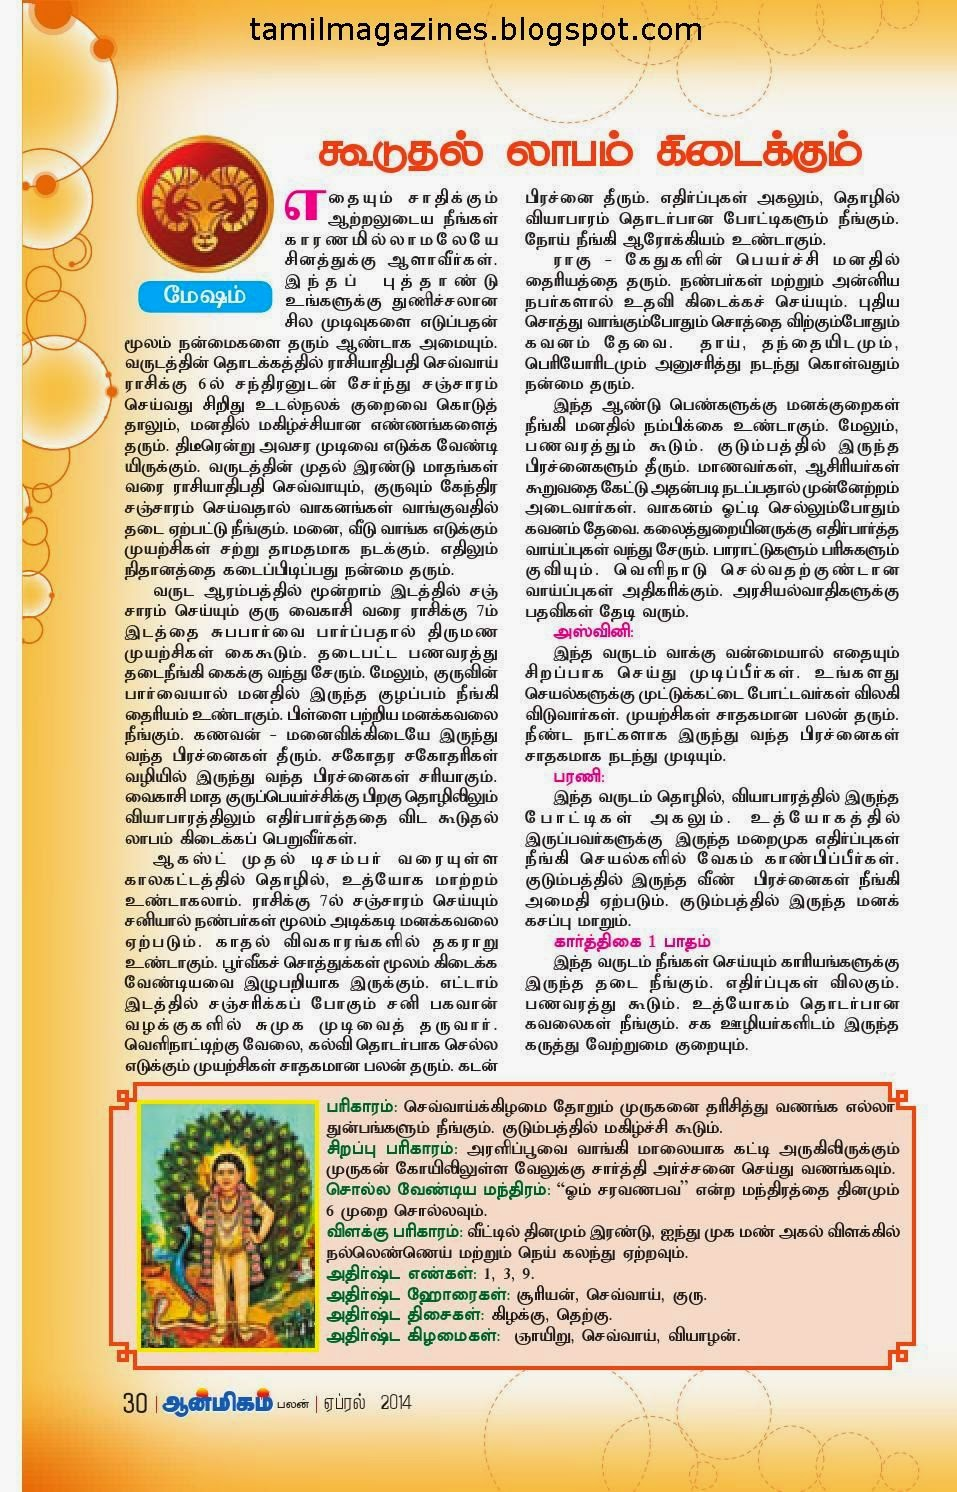 read through the rasi palan and its pariharangal from the pages of